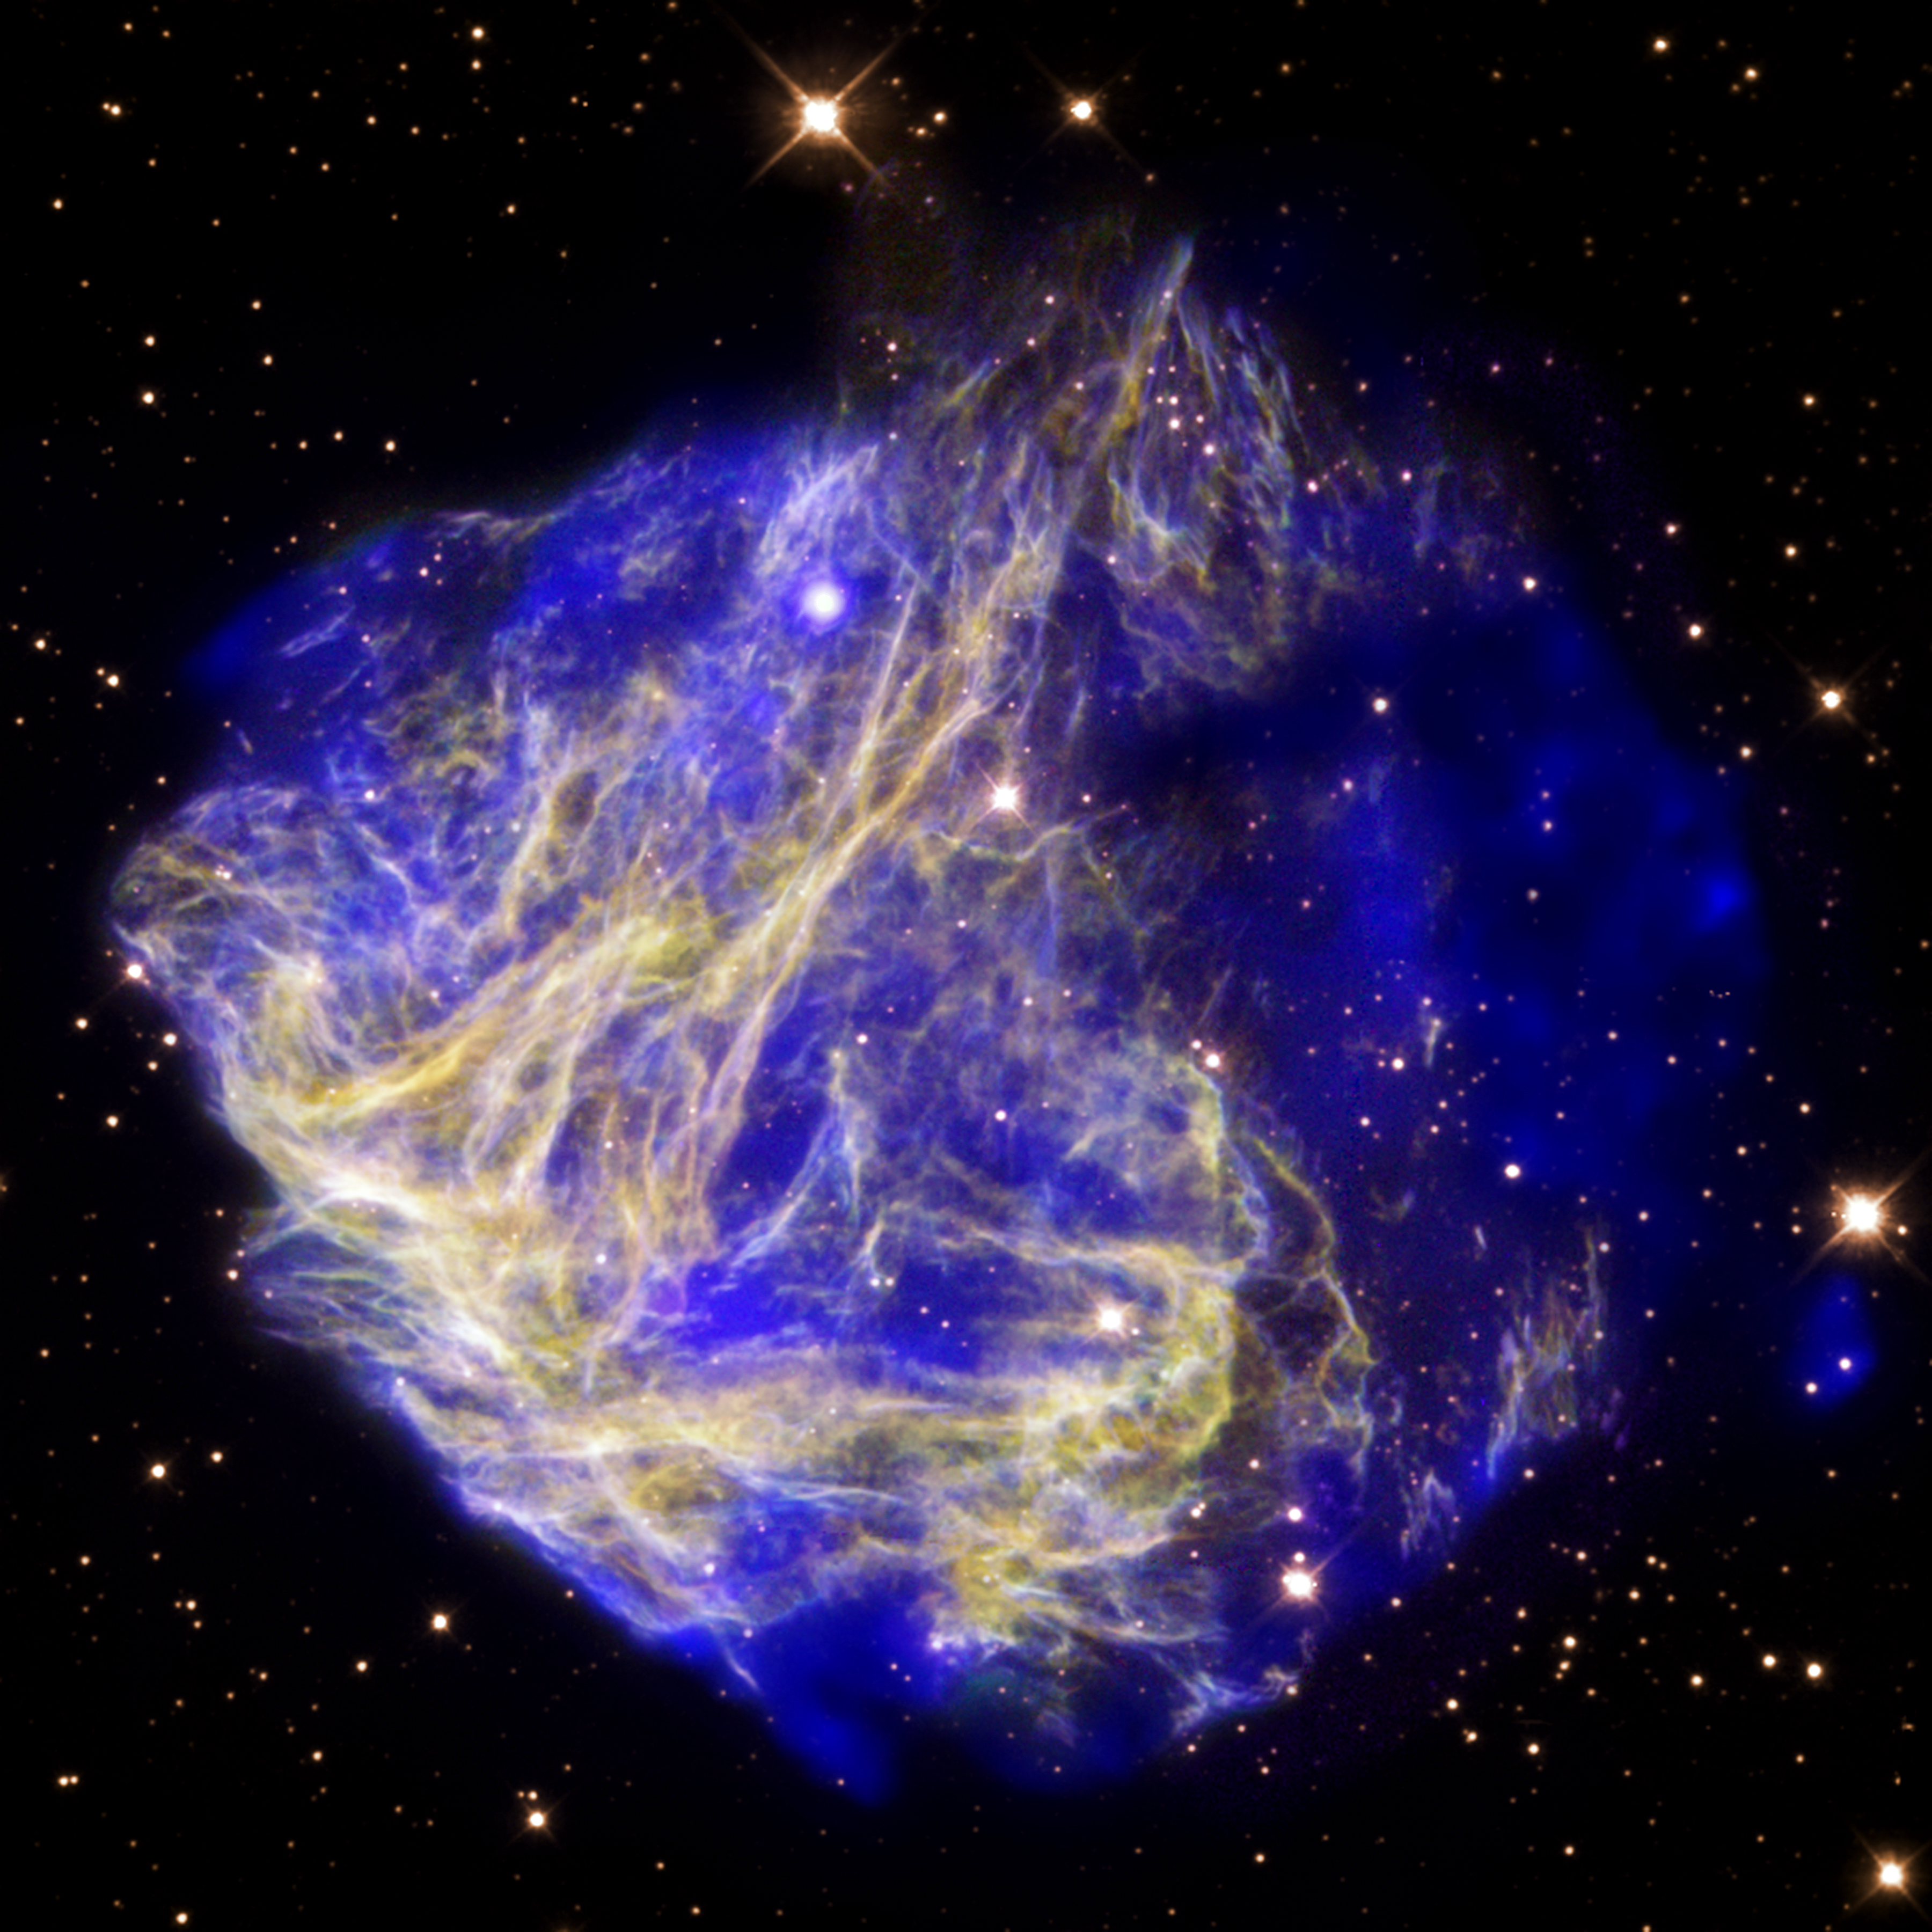 Filestellar Shrapnel Seen In Aftermath Of Explosion A Supernova Remnant Located In The